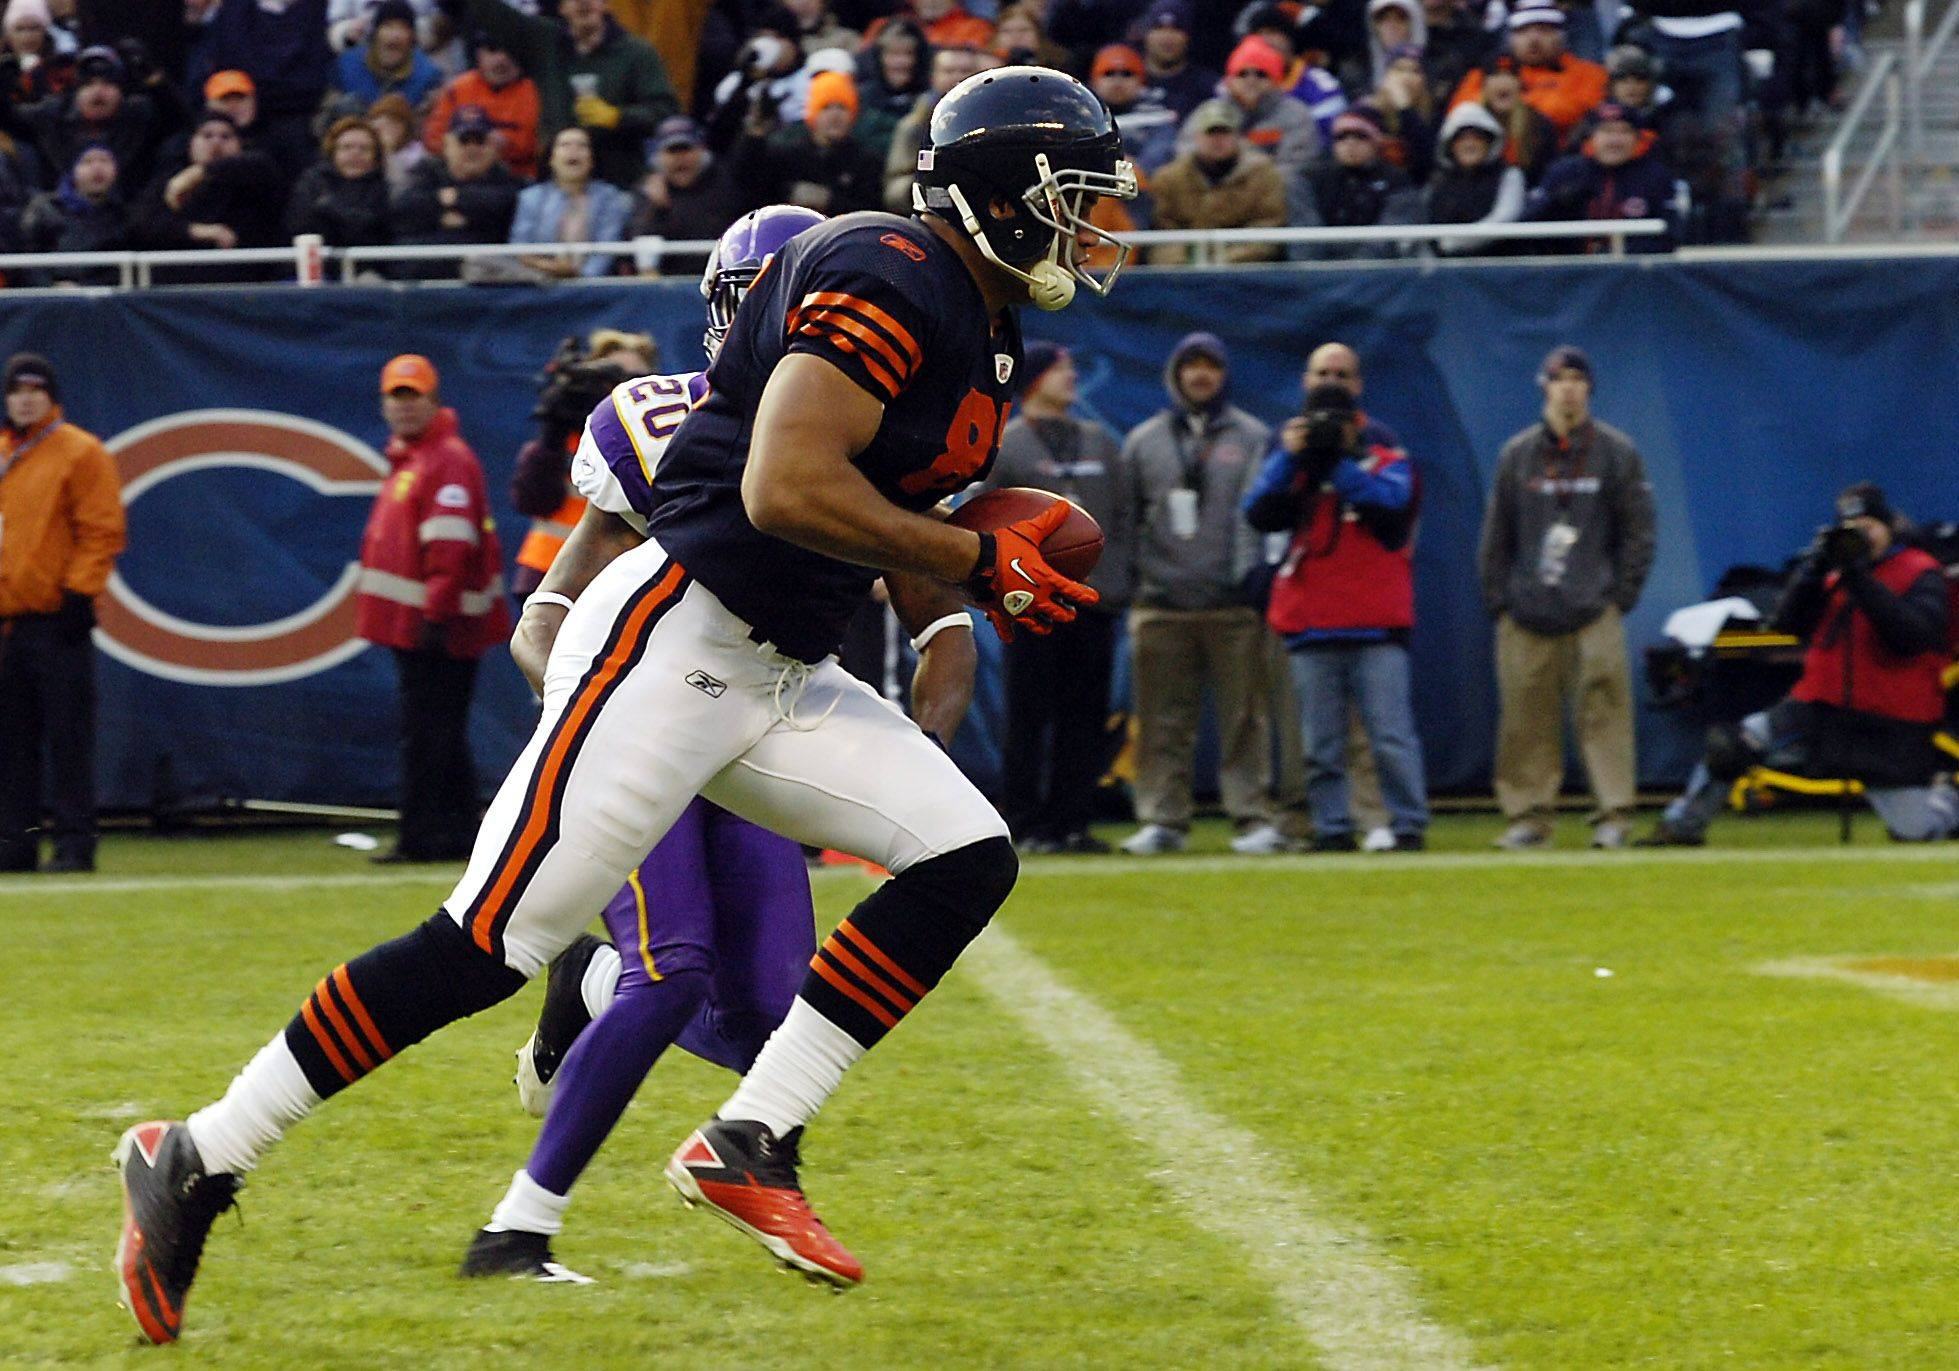 Bears Kellen Davis score a 4th quarter touchdown as Minnesota defense is helpless to stop him.